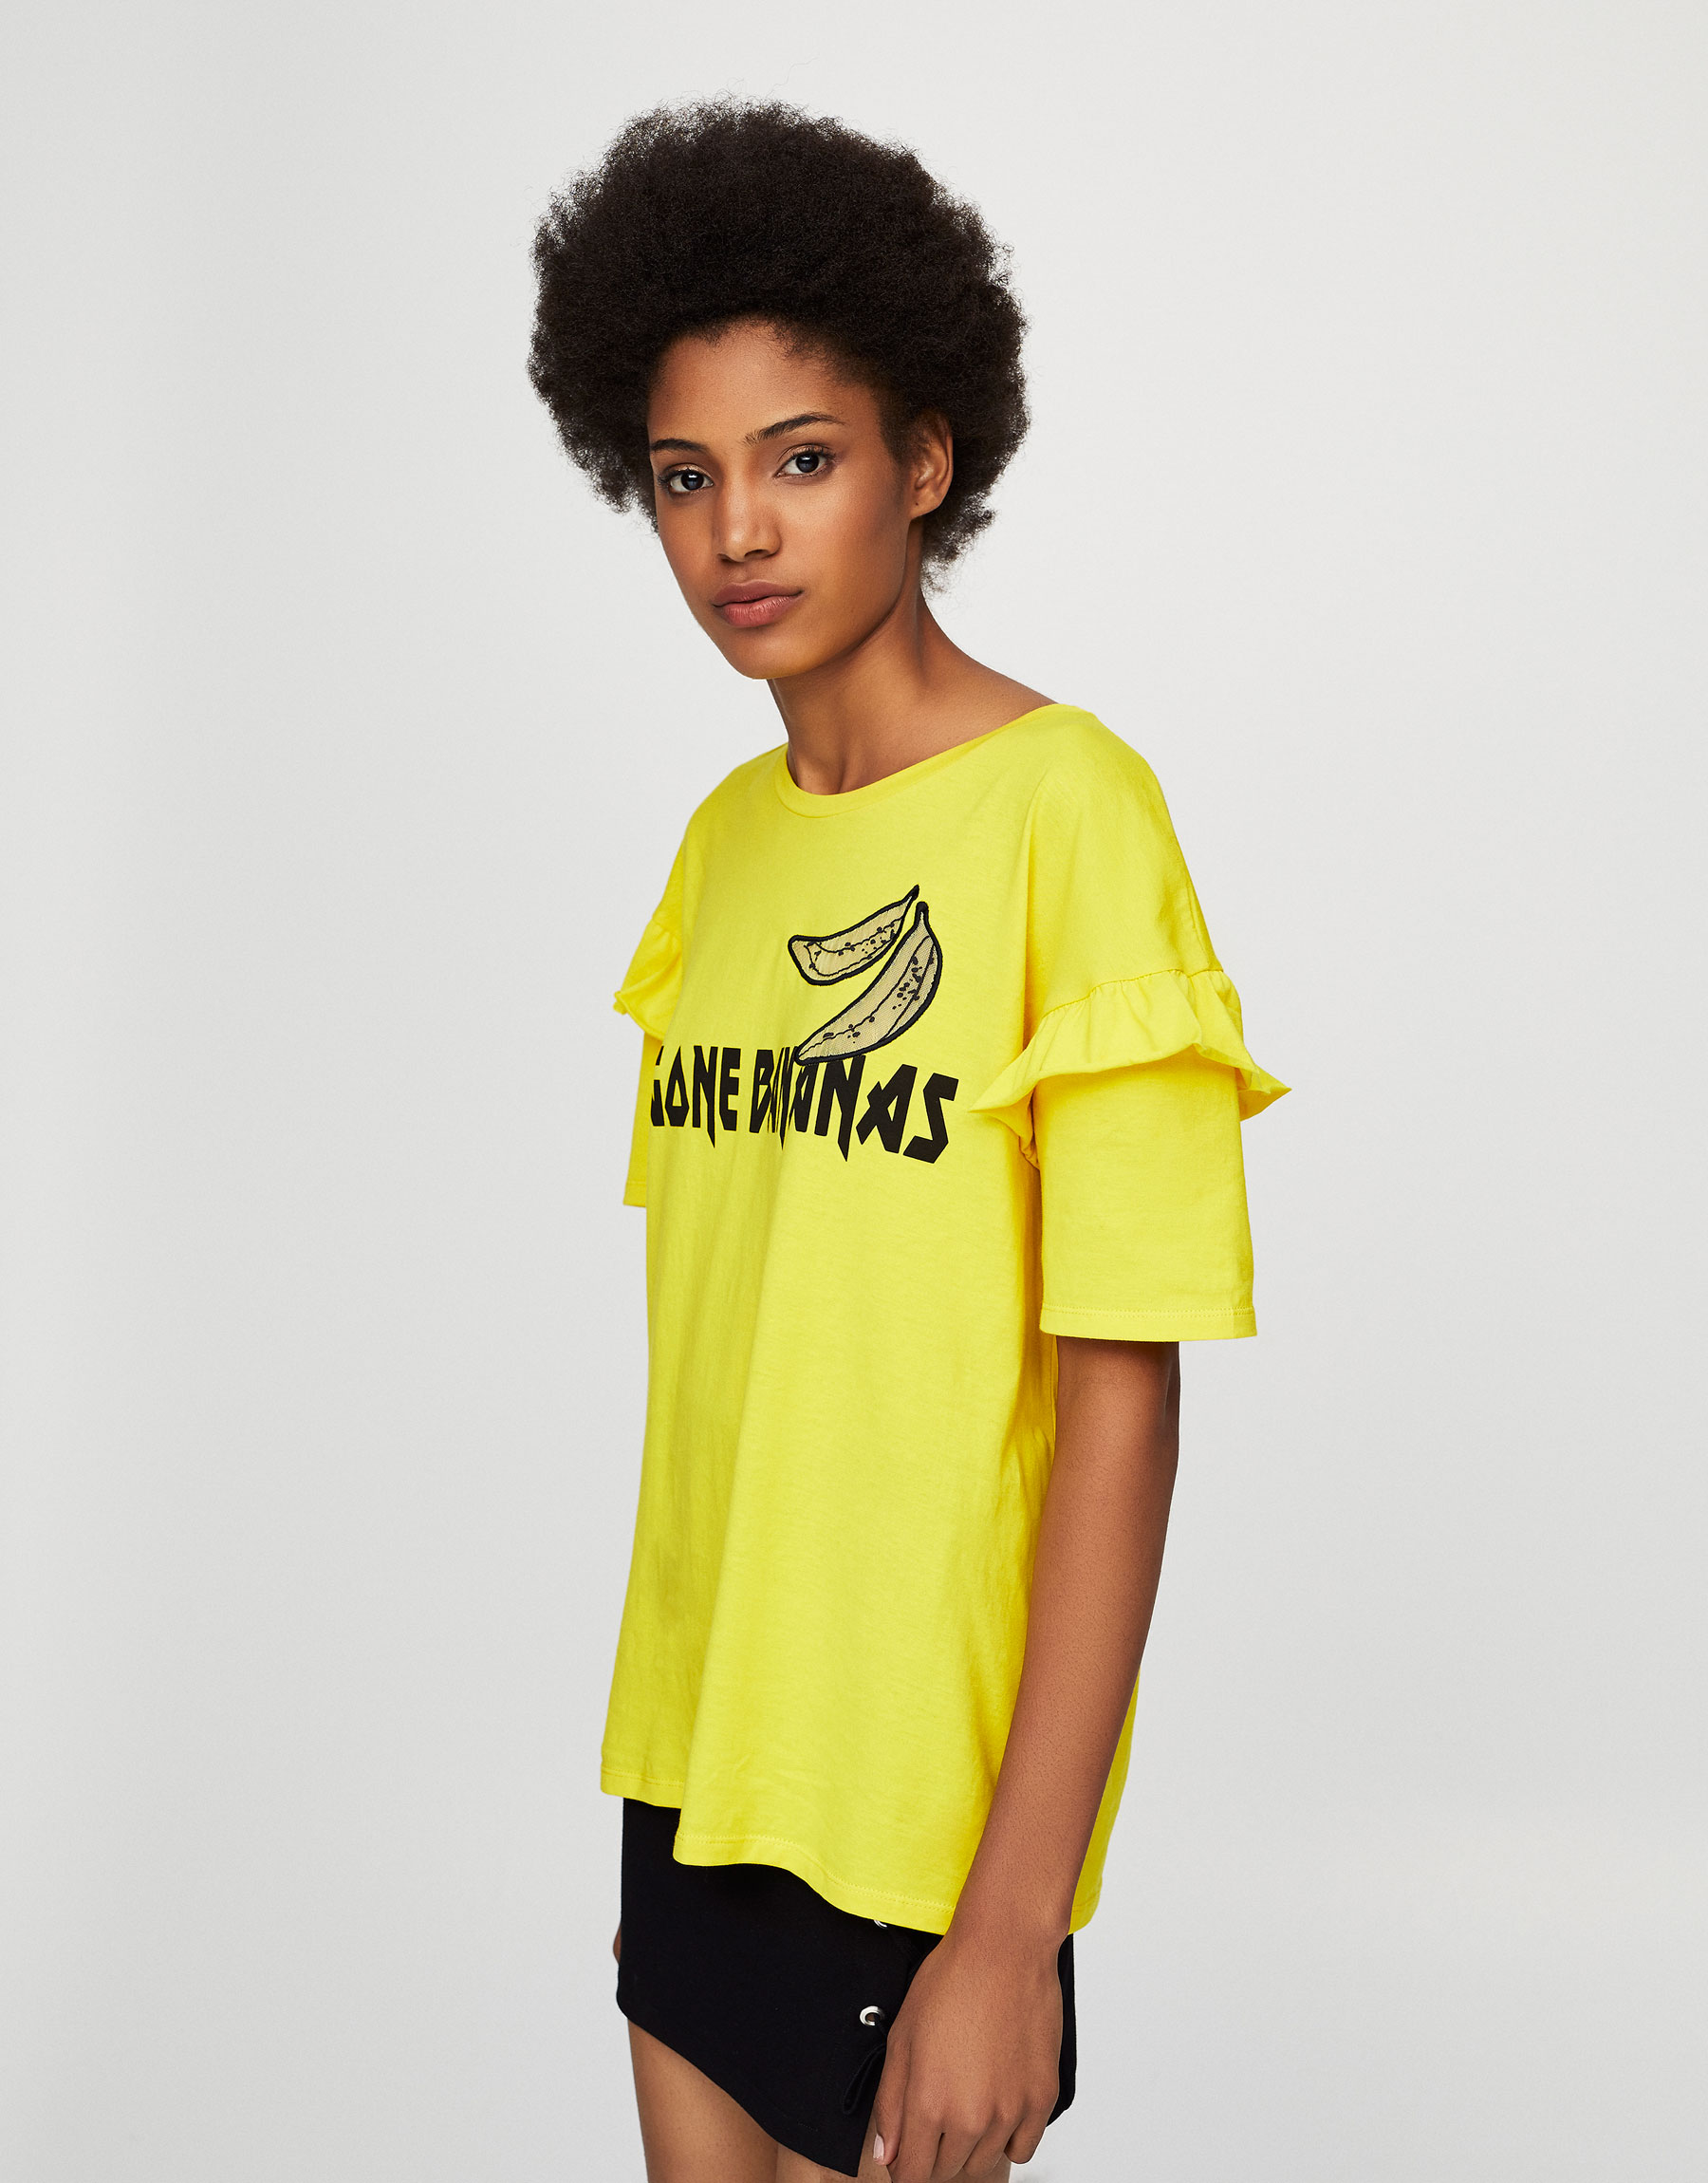 Gone bananas T-shirt with ruffled sleeves